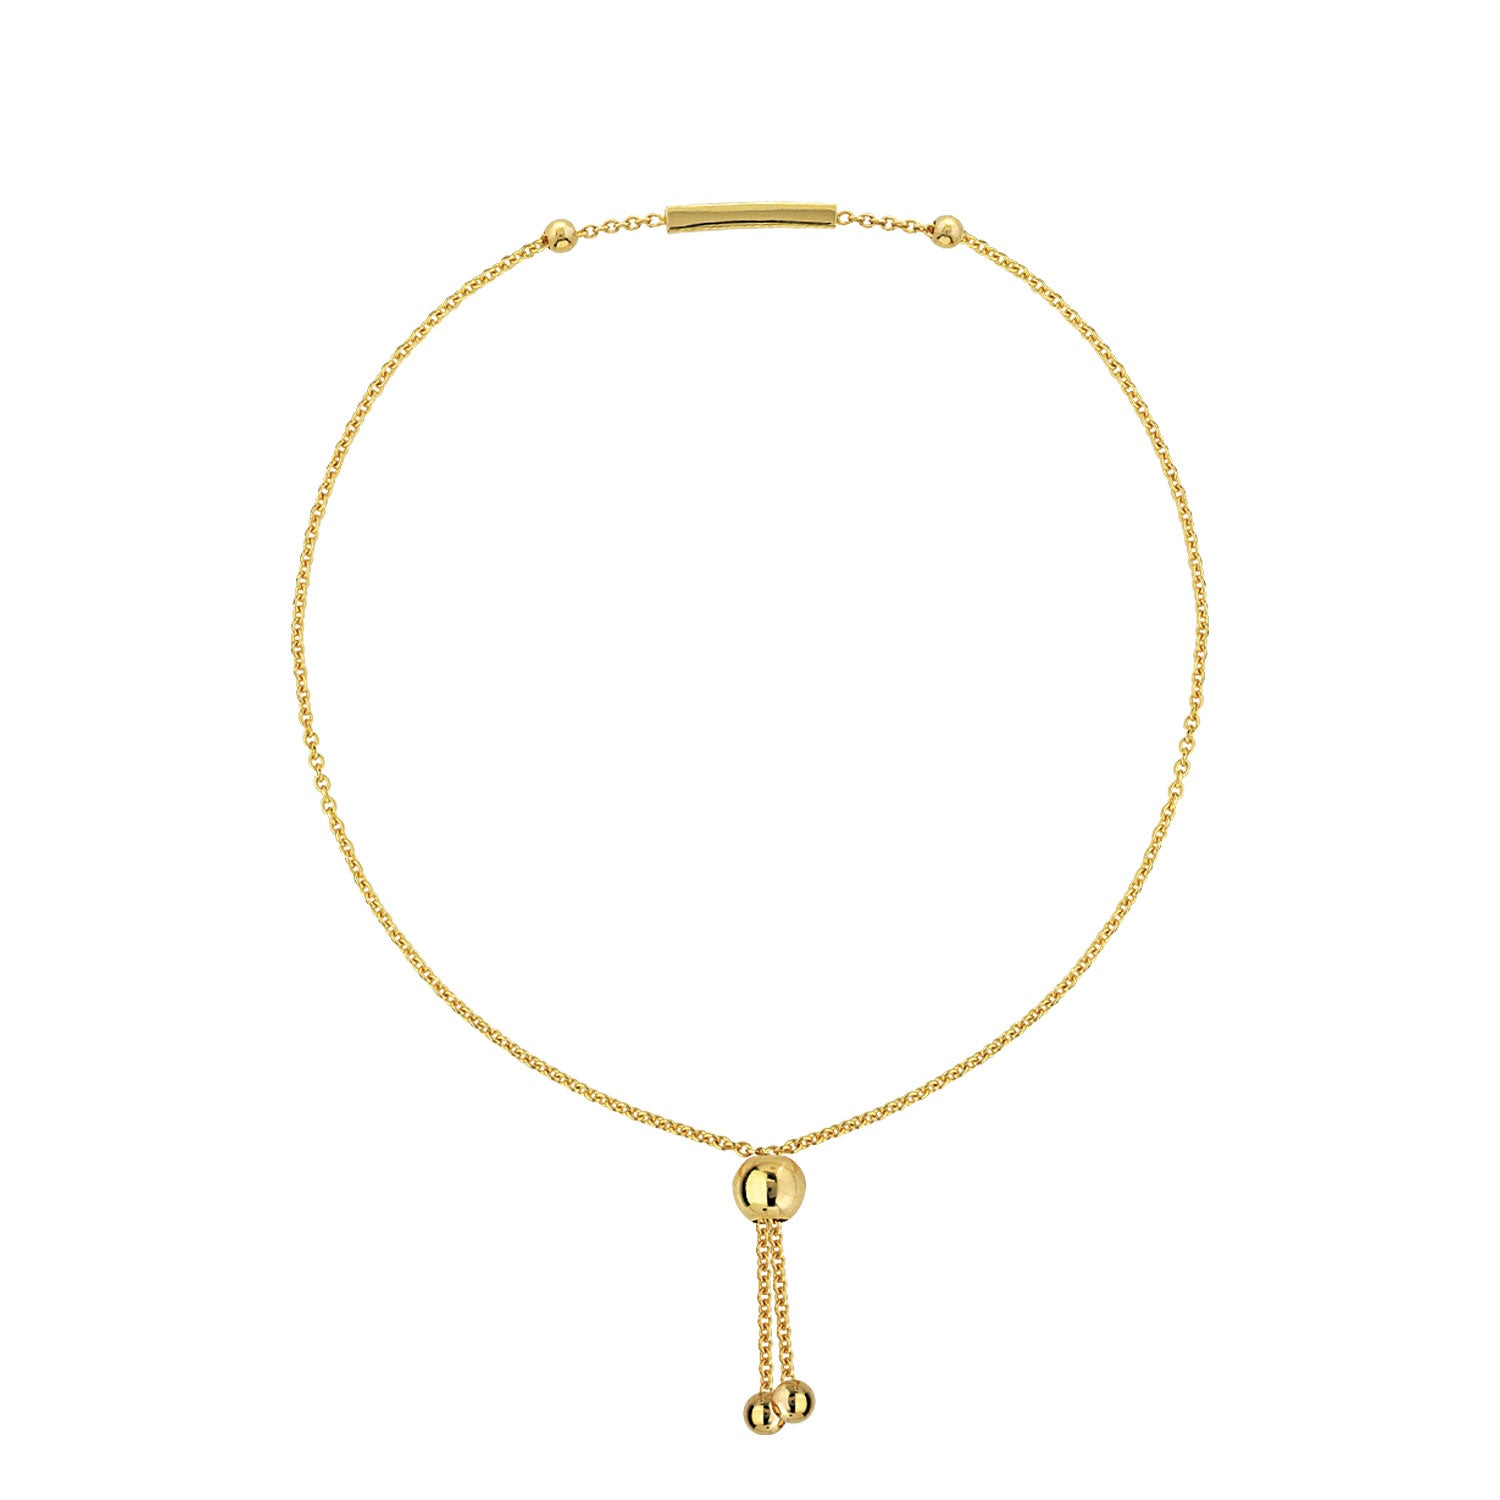 Polished Bar Bolo Bracelet, 14K Yellow Gold